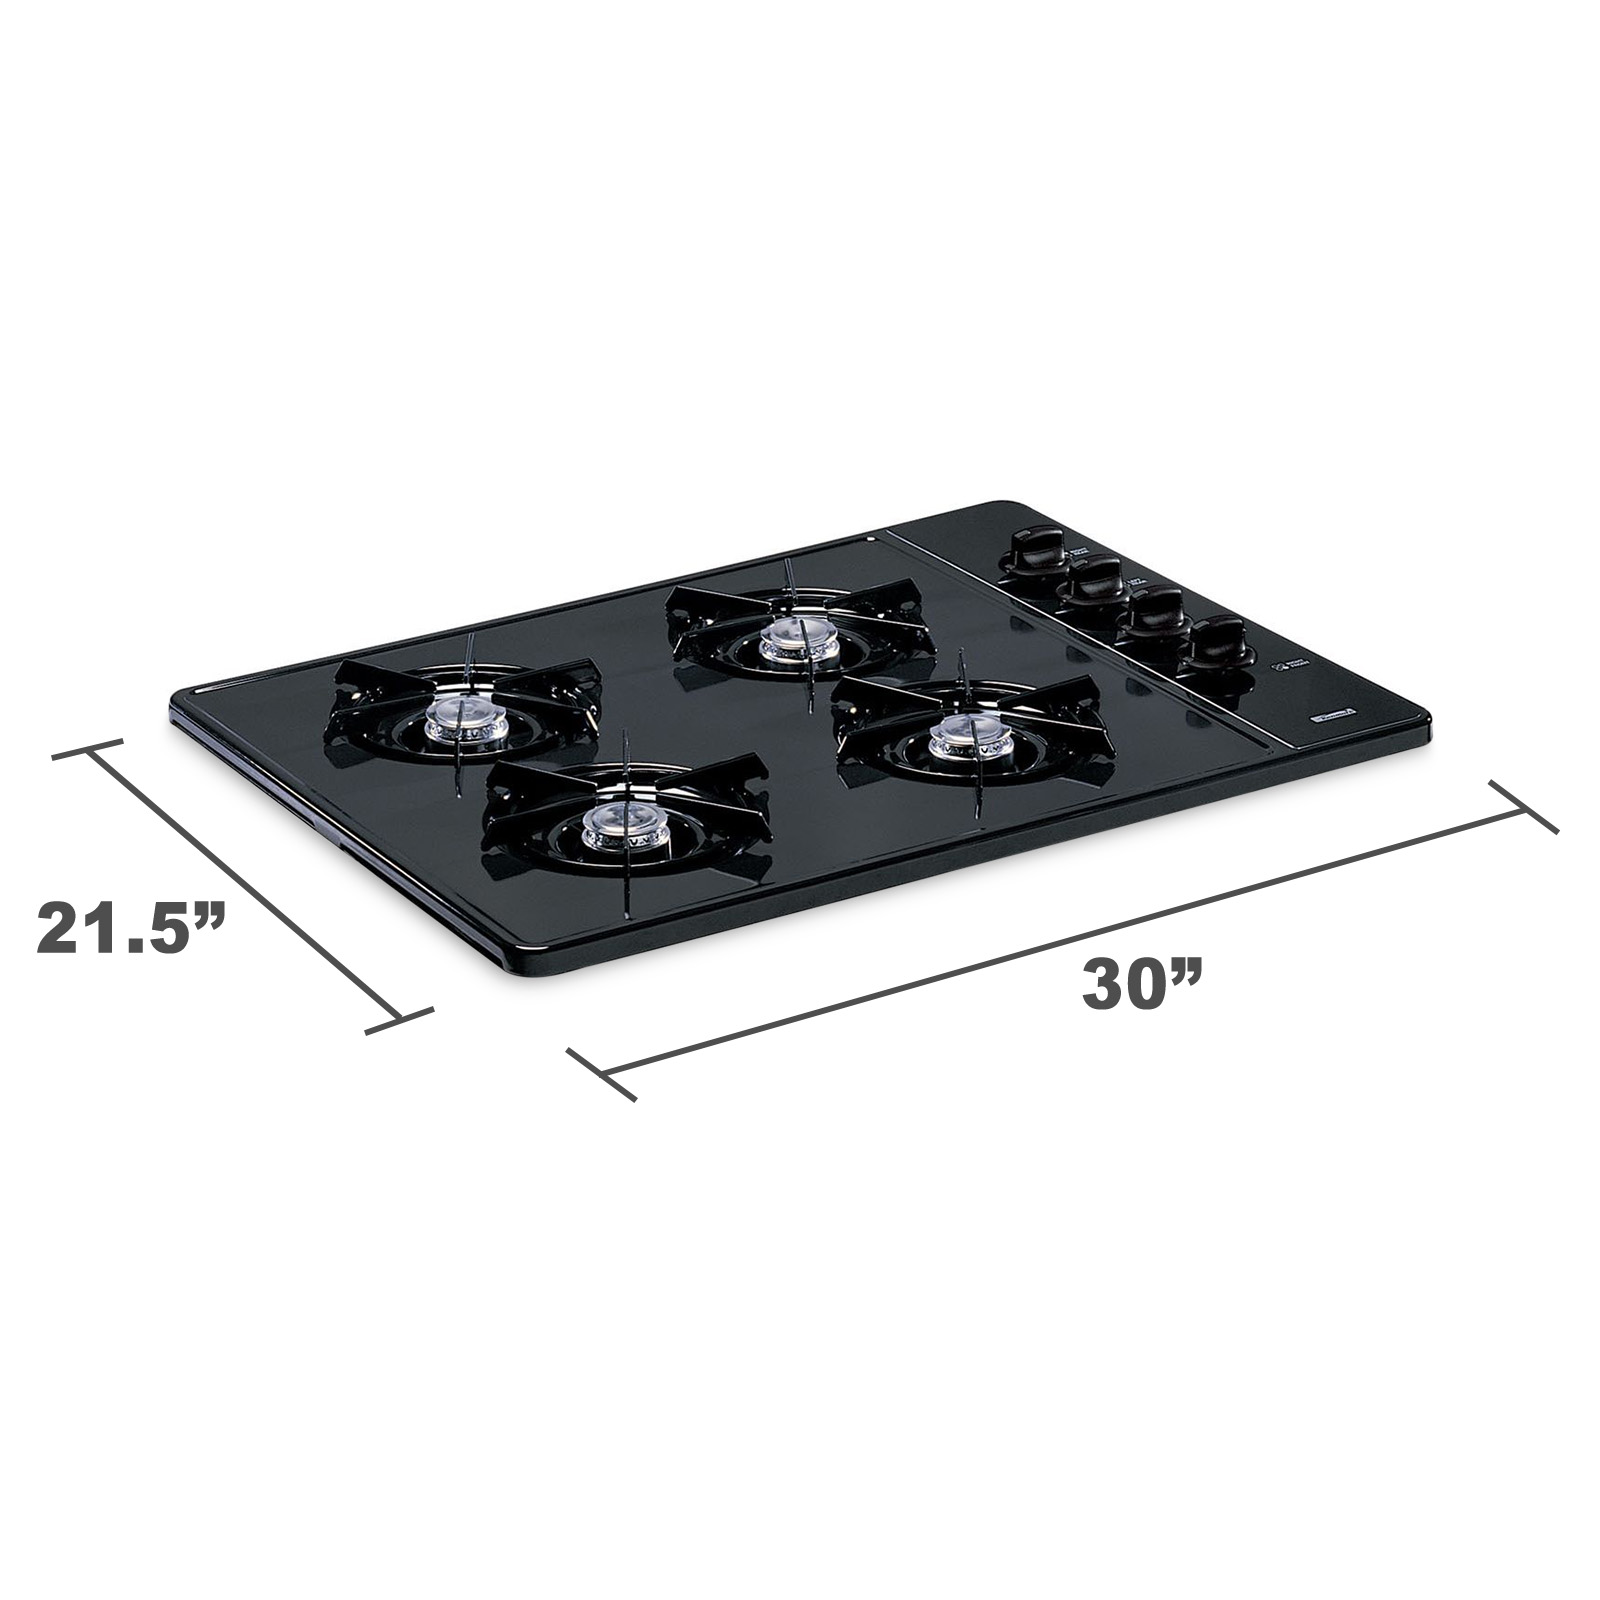 "Kenmore 30"" Gas Cooktop - Black"